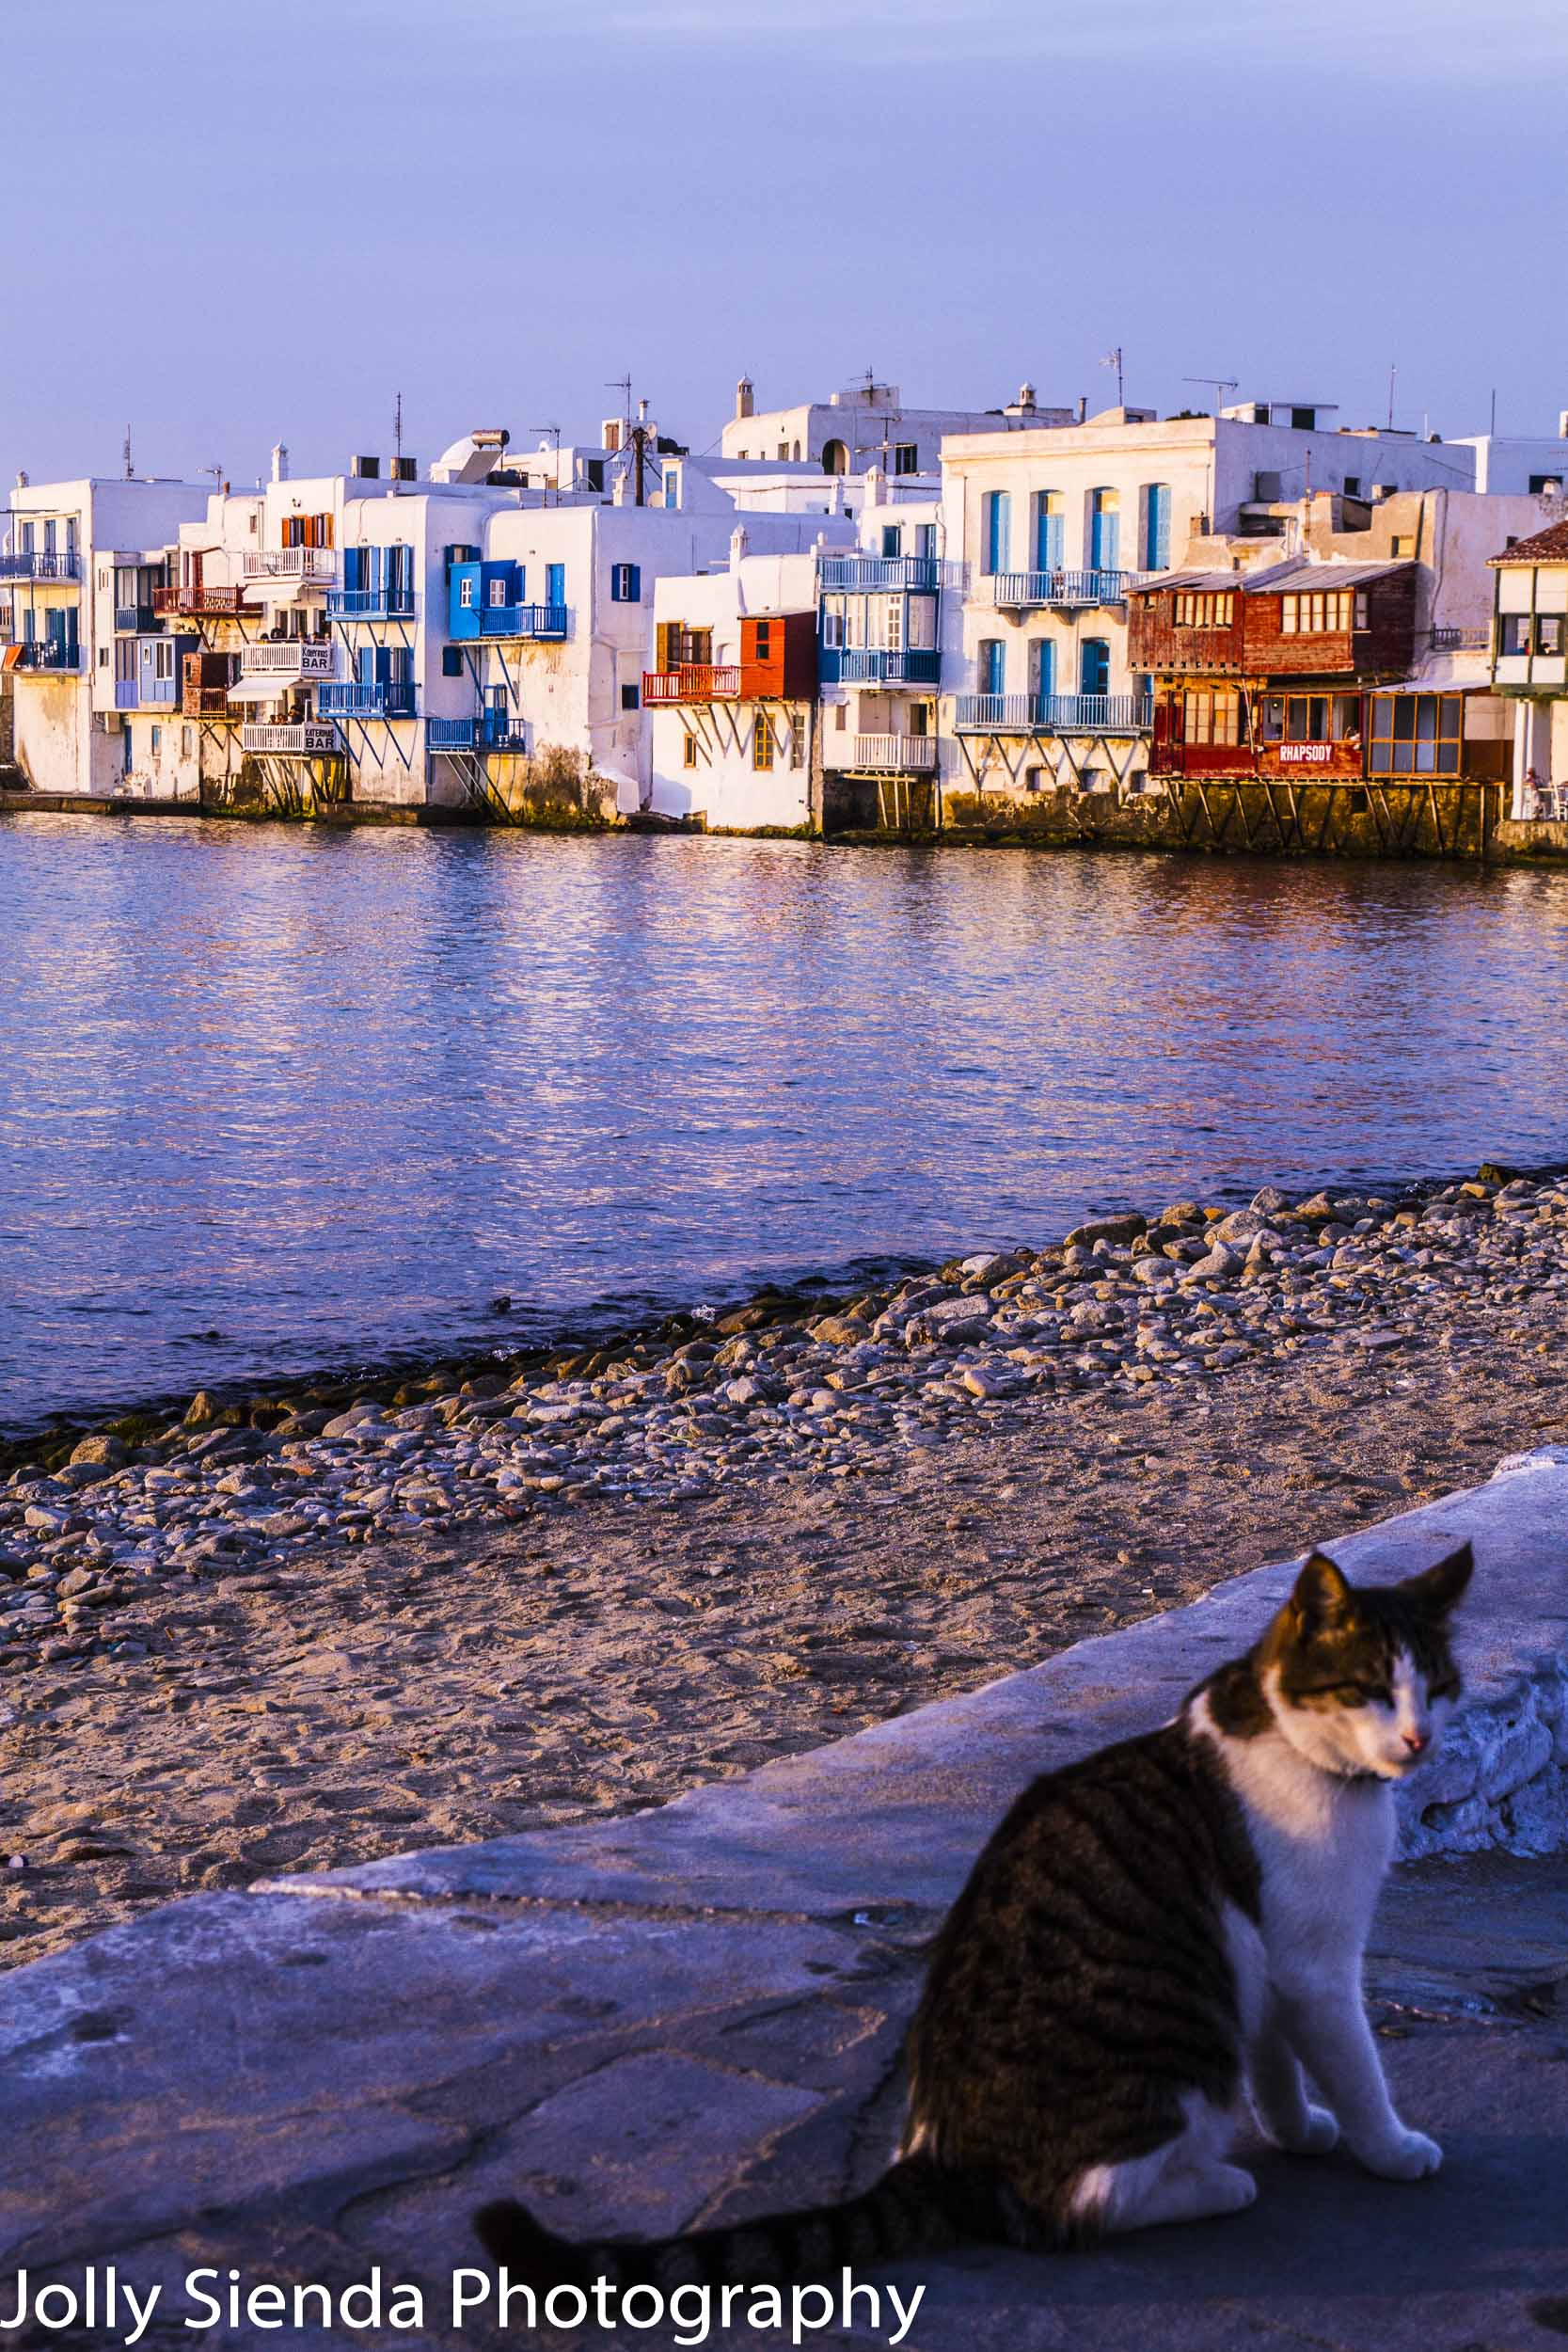 A Tuxedo Cat Pauses at Sunset with the town of Mykonos, Greece i